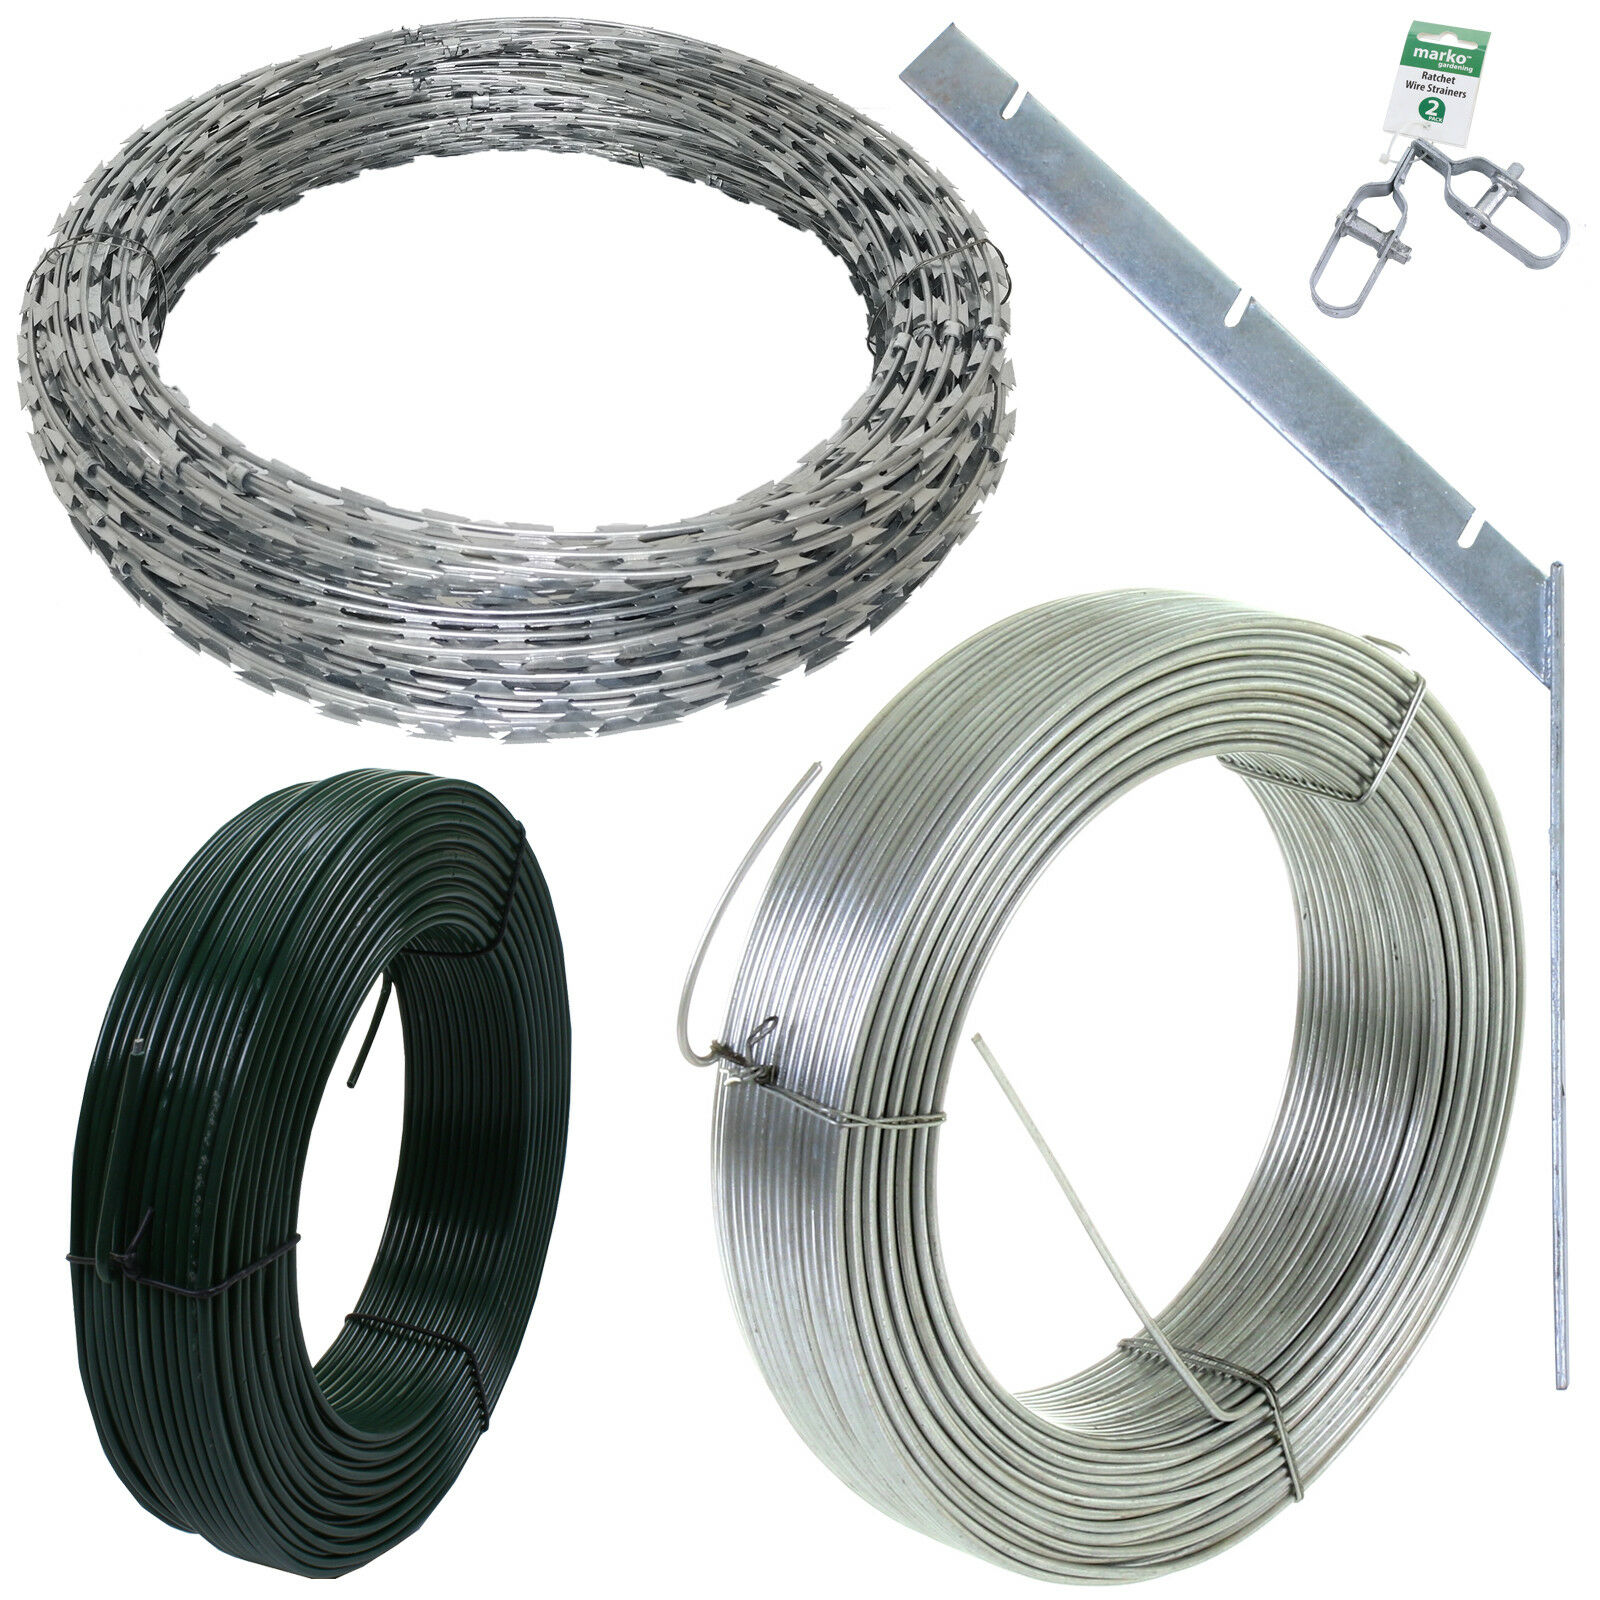 RAZOR Wire Fencing Strainers Bracket Tensioning Security Fence ...